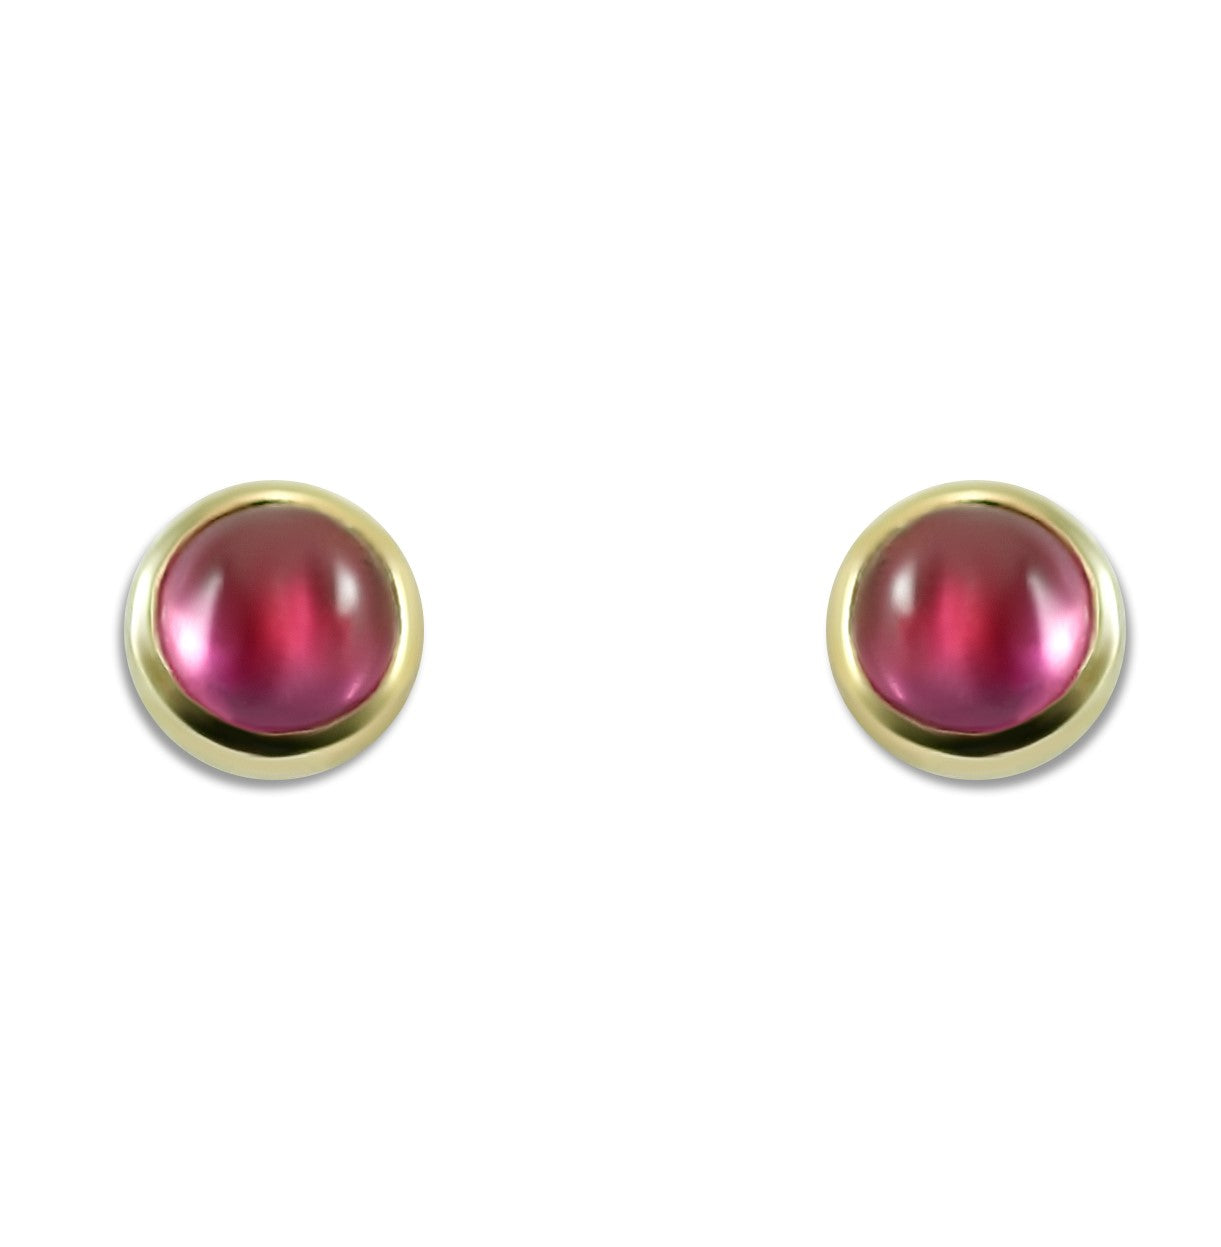 pink tourmaline bezel set stud earrings 14k yellow gold October birthstone